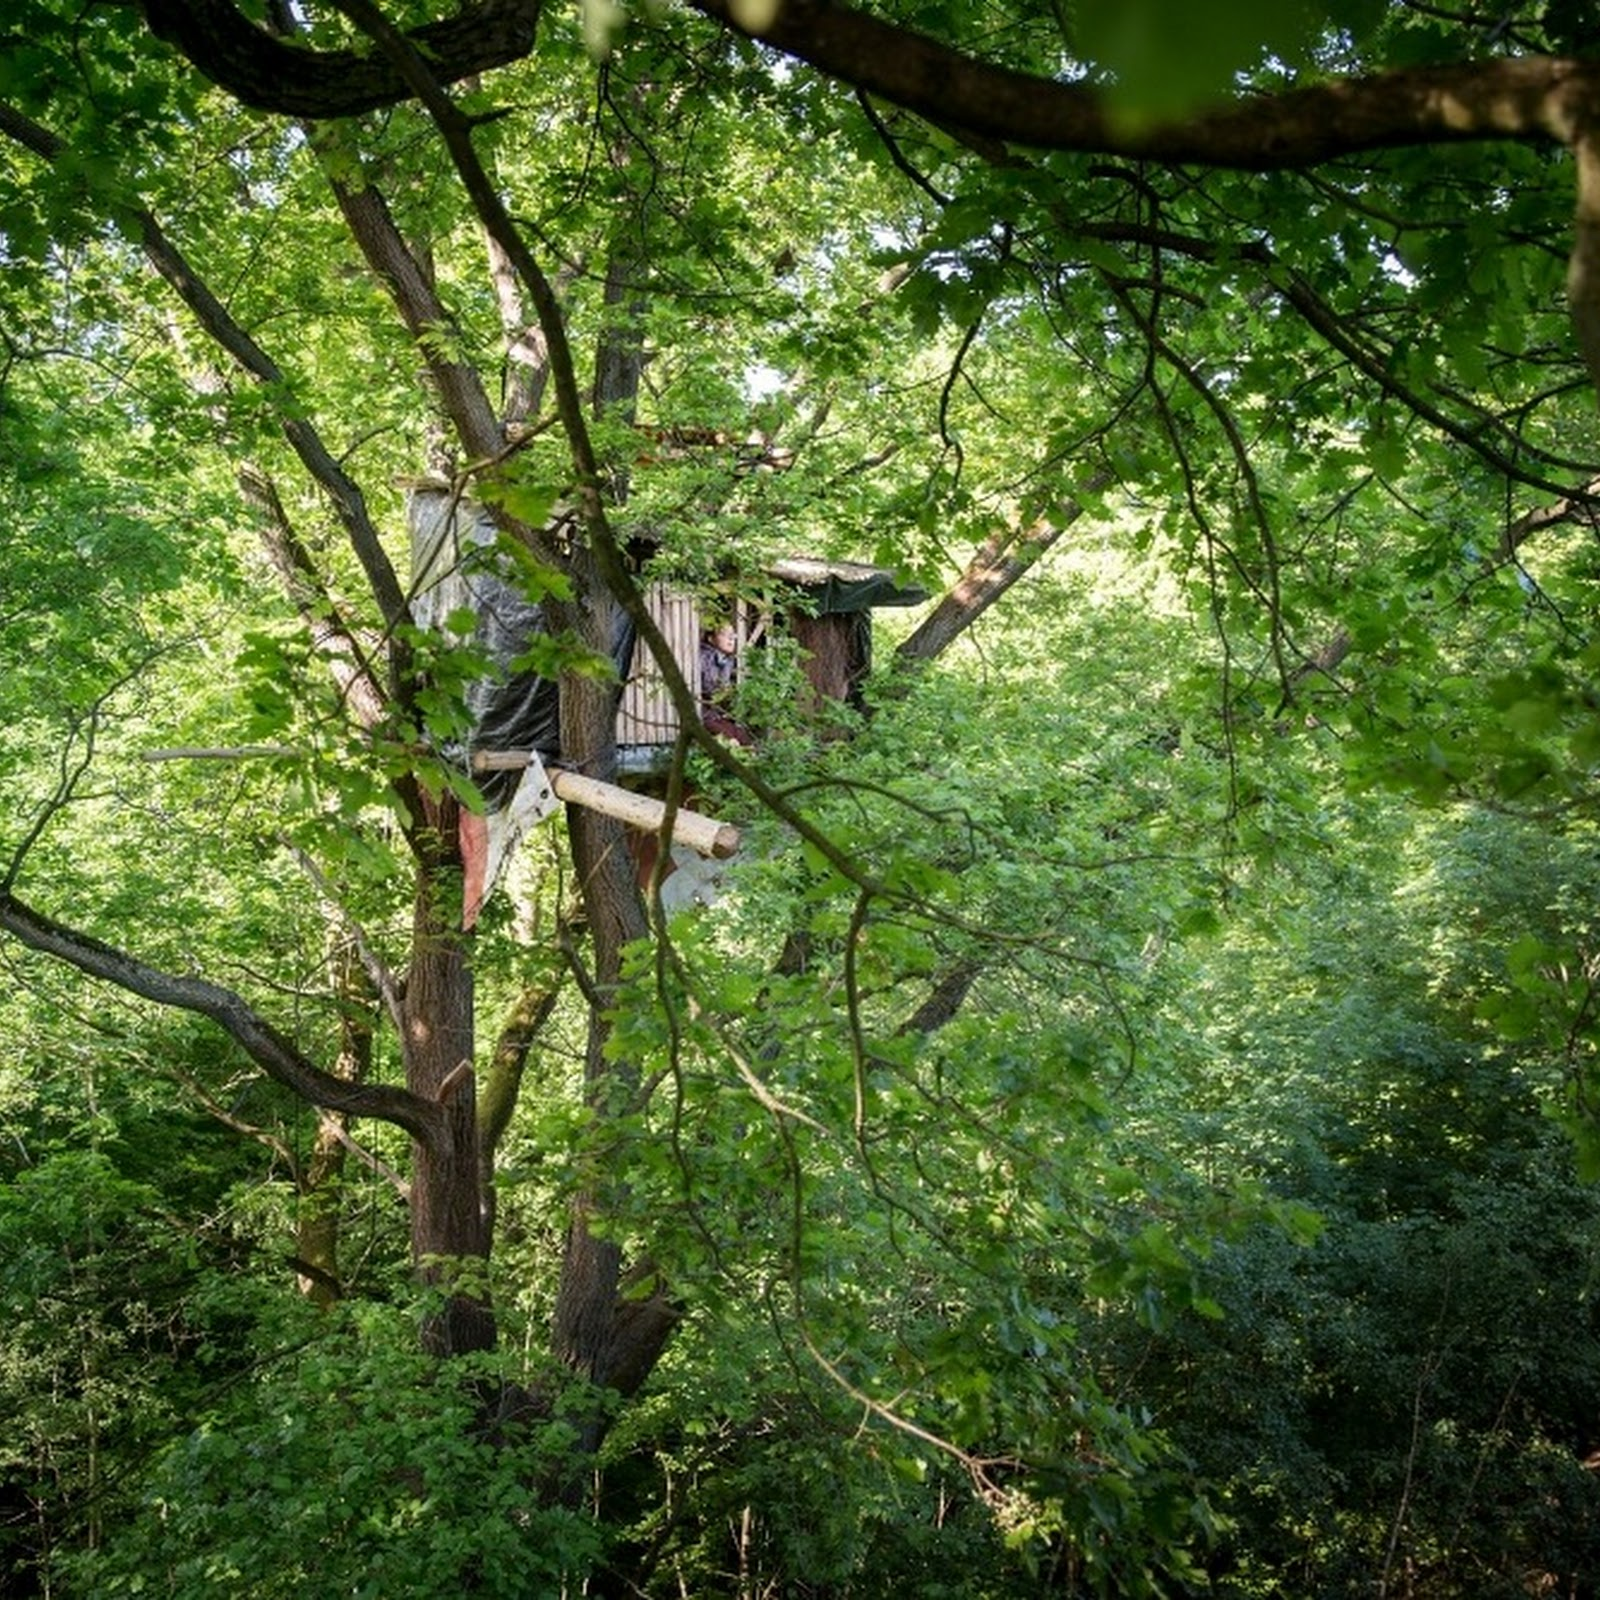 The Treetop Squatters of Hambach Forest